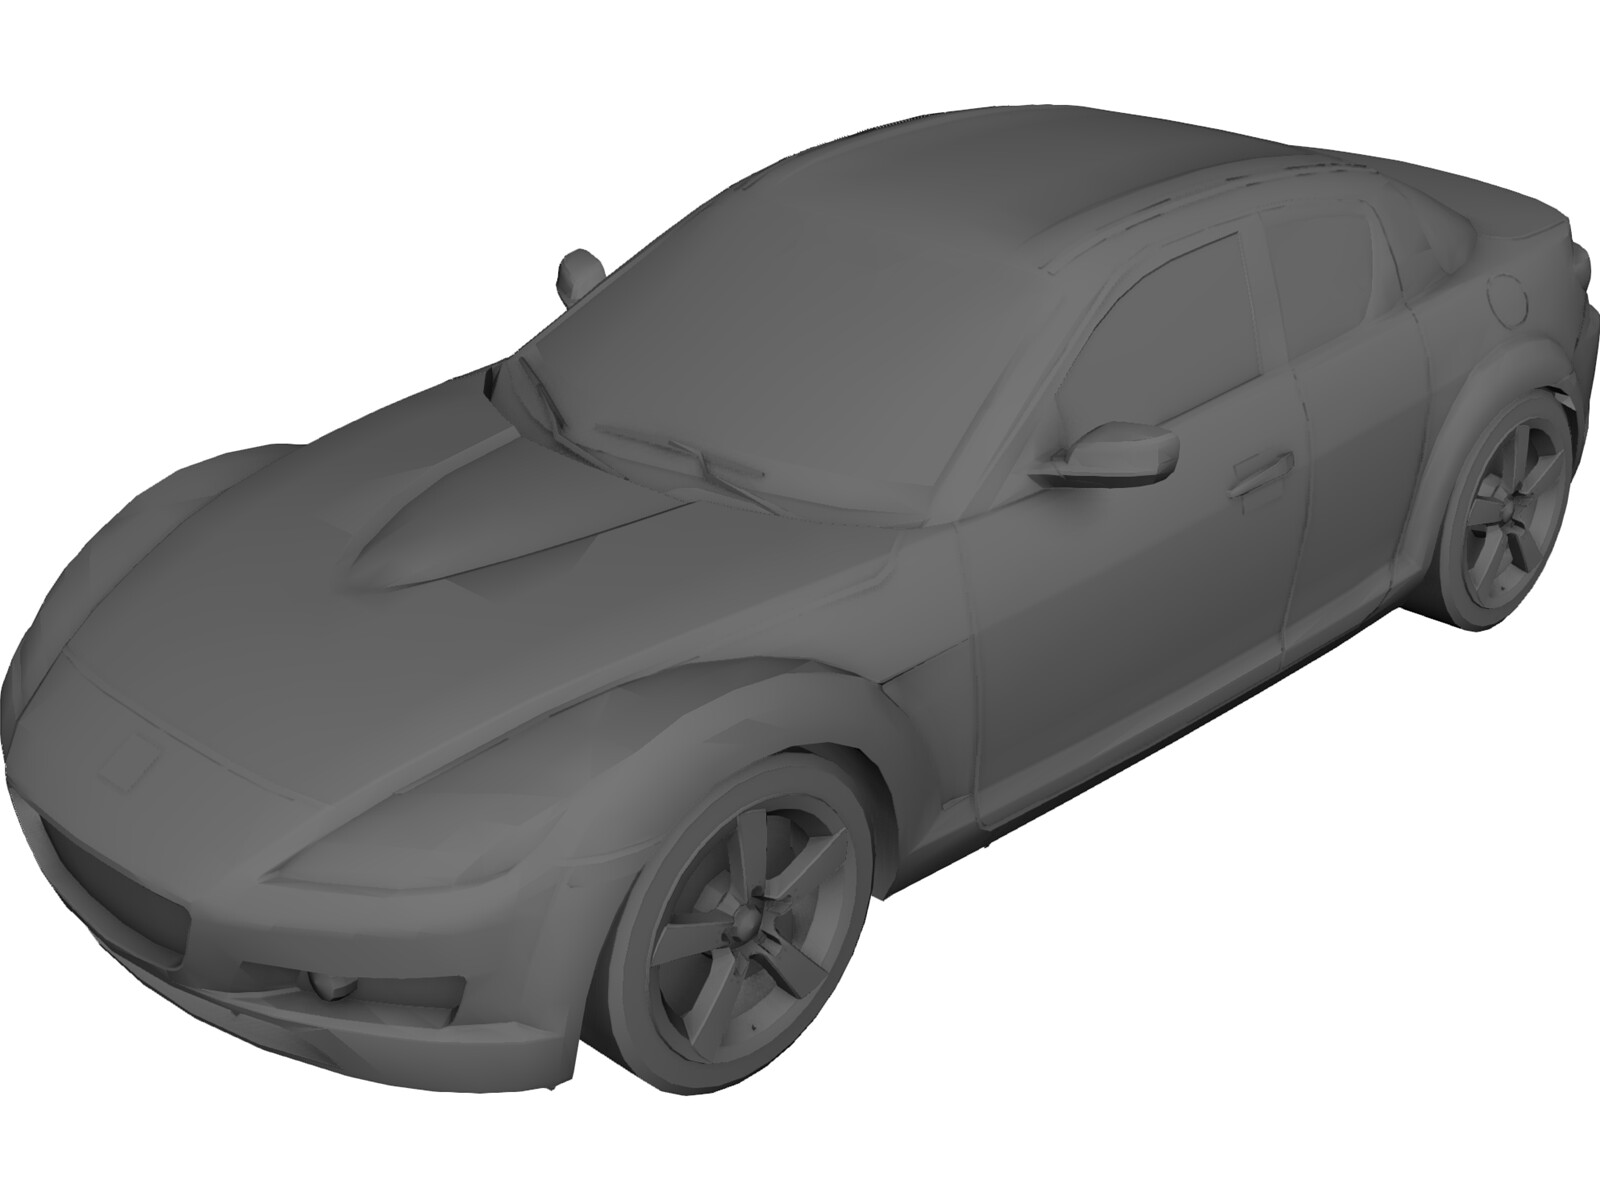 Mazda RX-8 3D Model - 3D CAD Browser